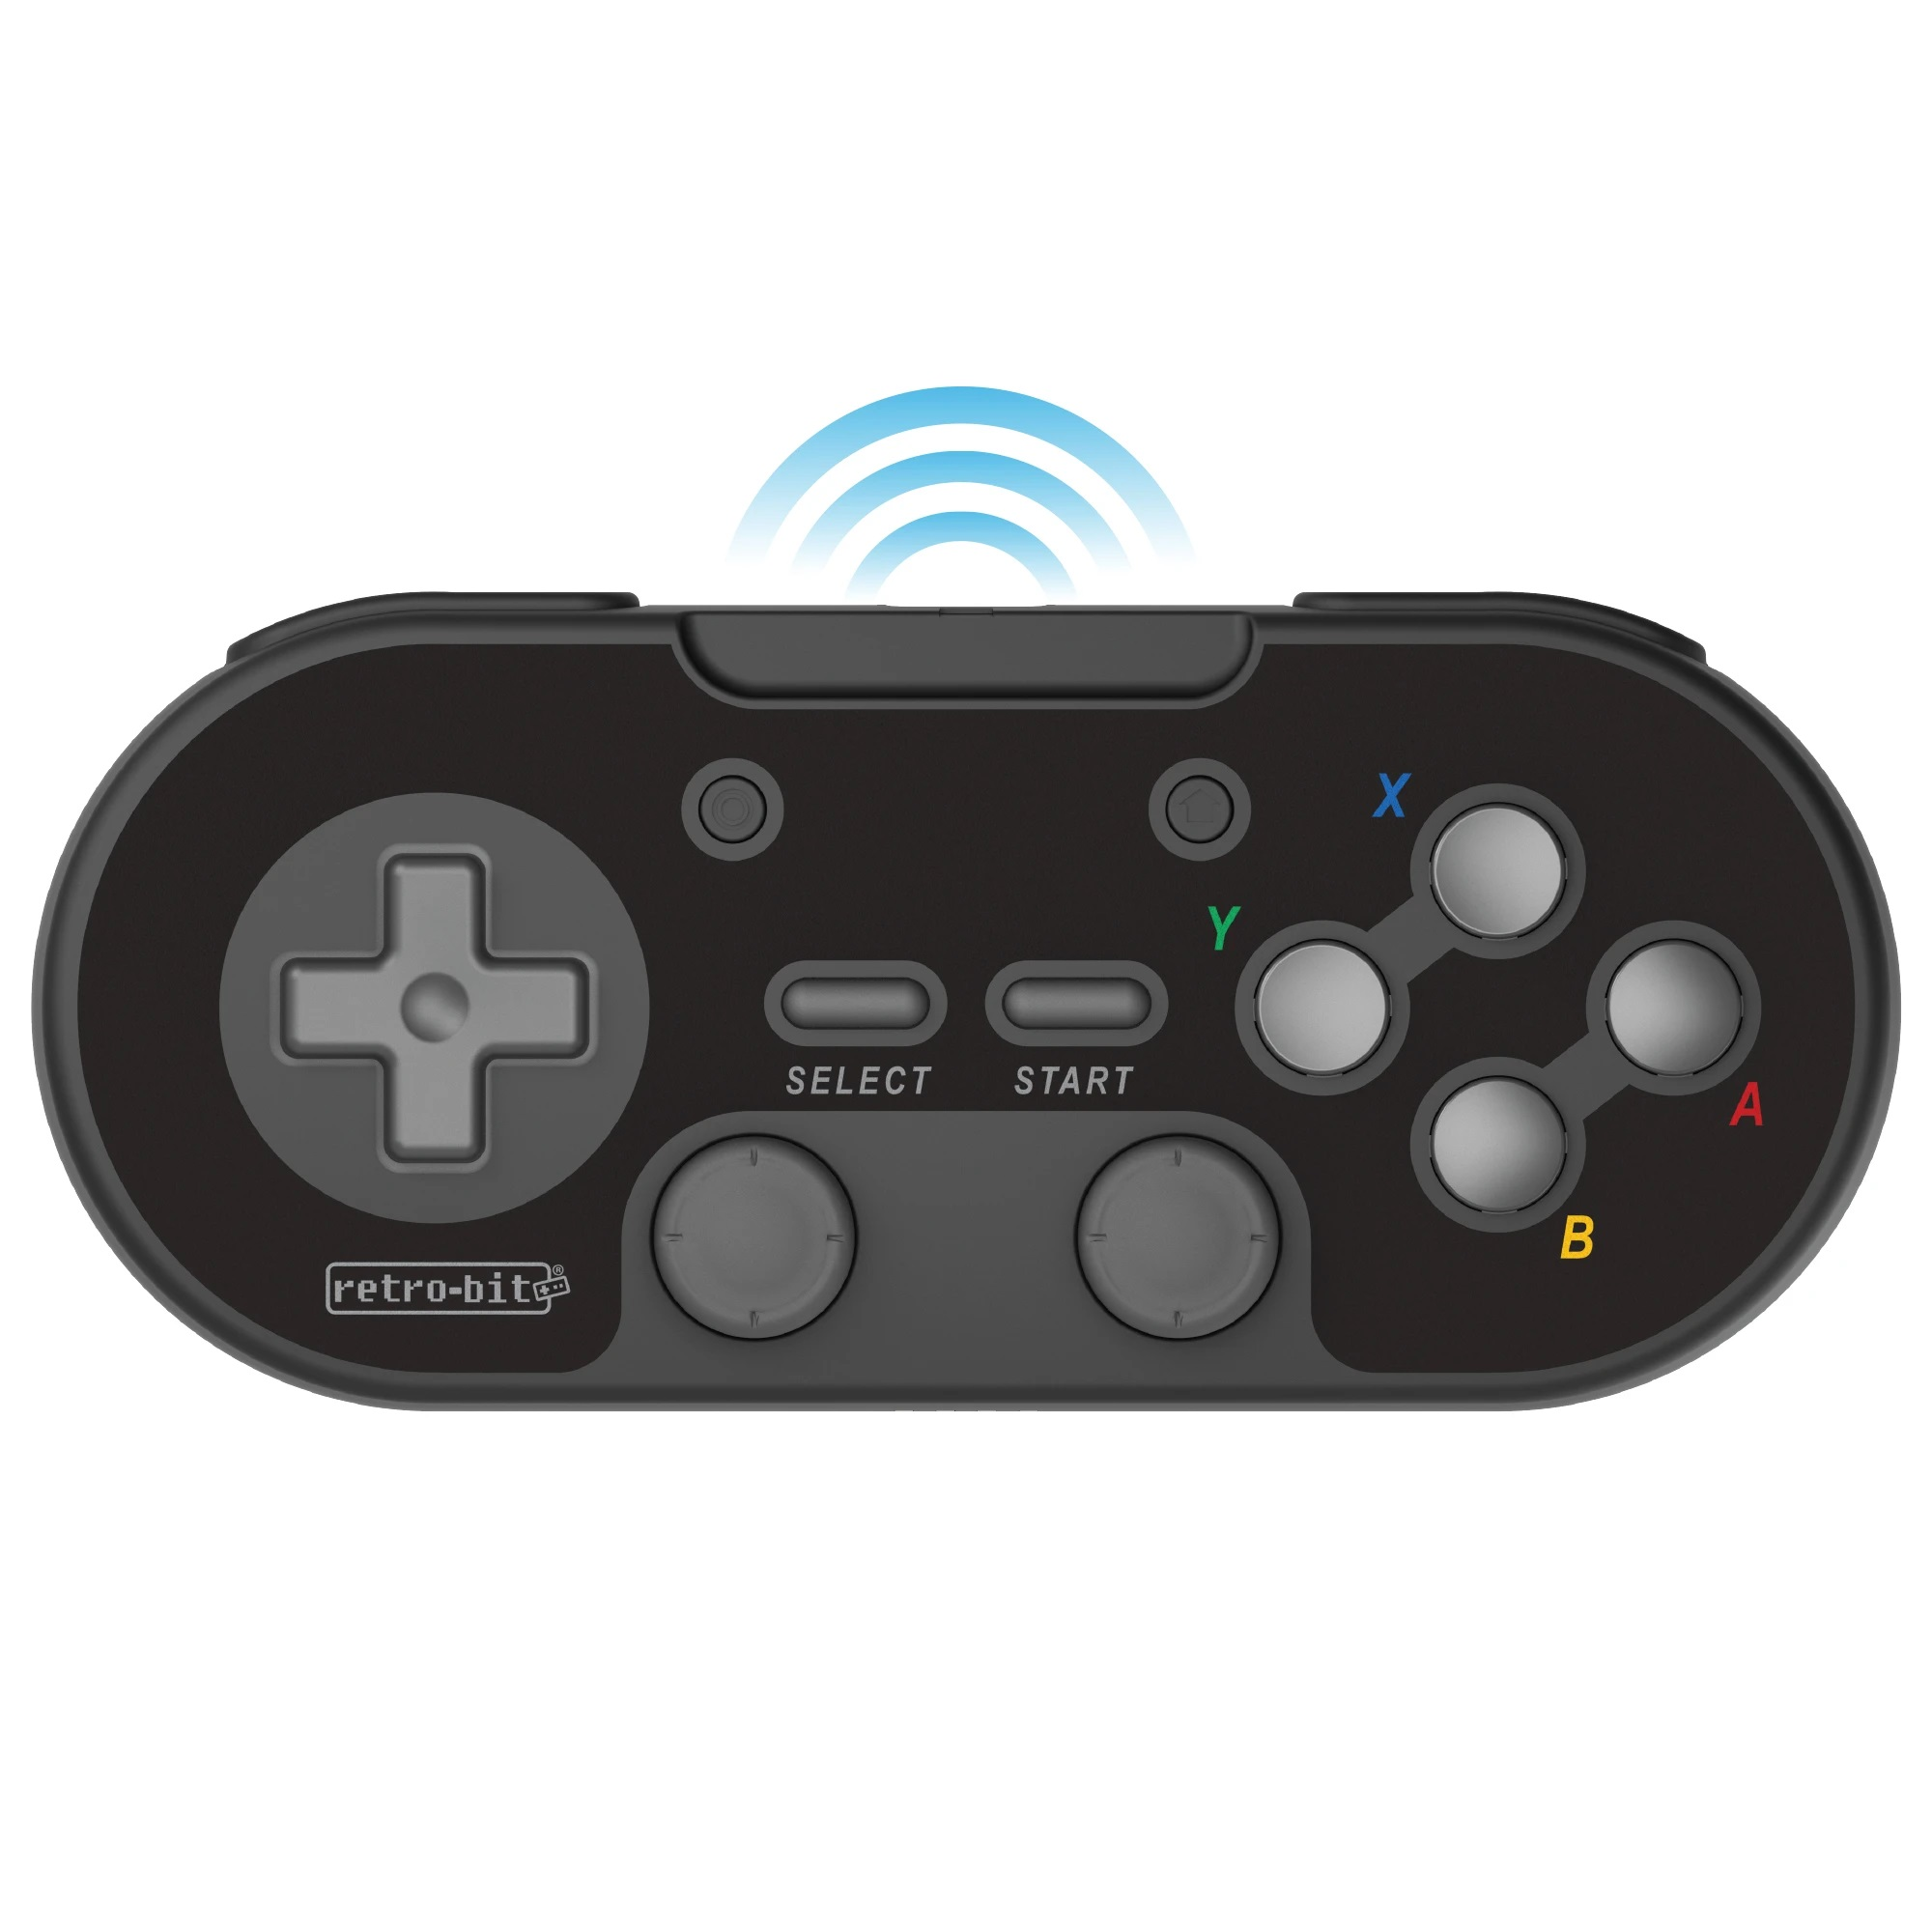 SNES Legacy 16 wireless controller by Retro-bit